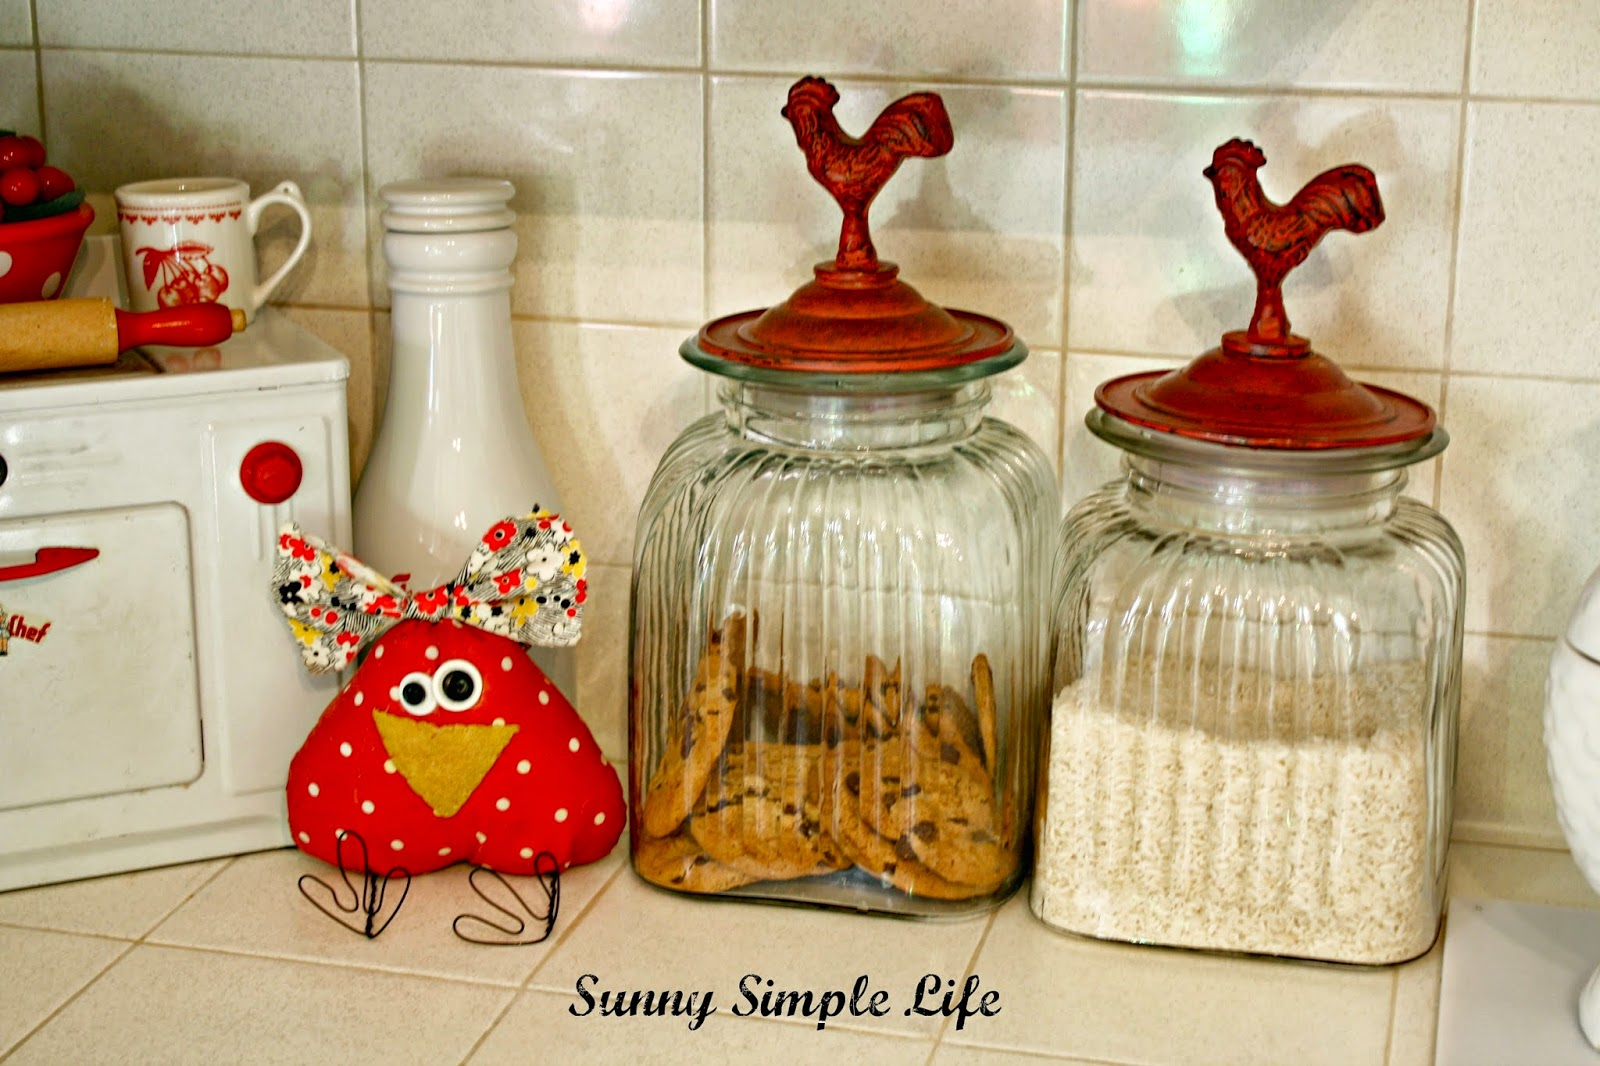 Sunny simple life chickens in kitchen decor for Kitchen decor items